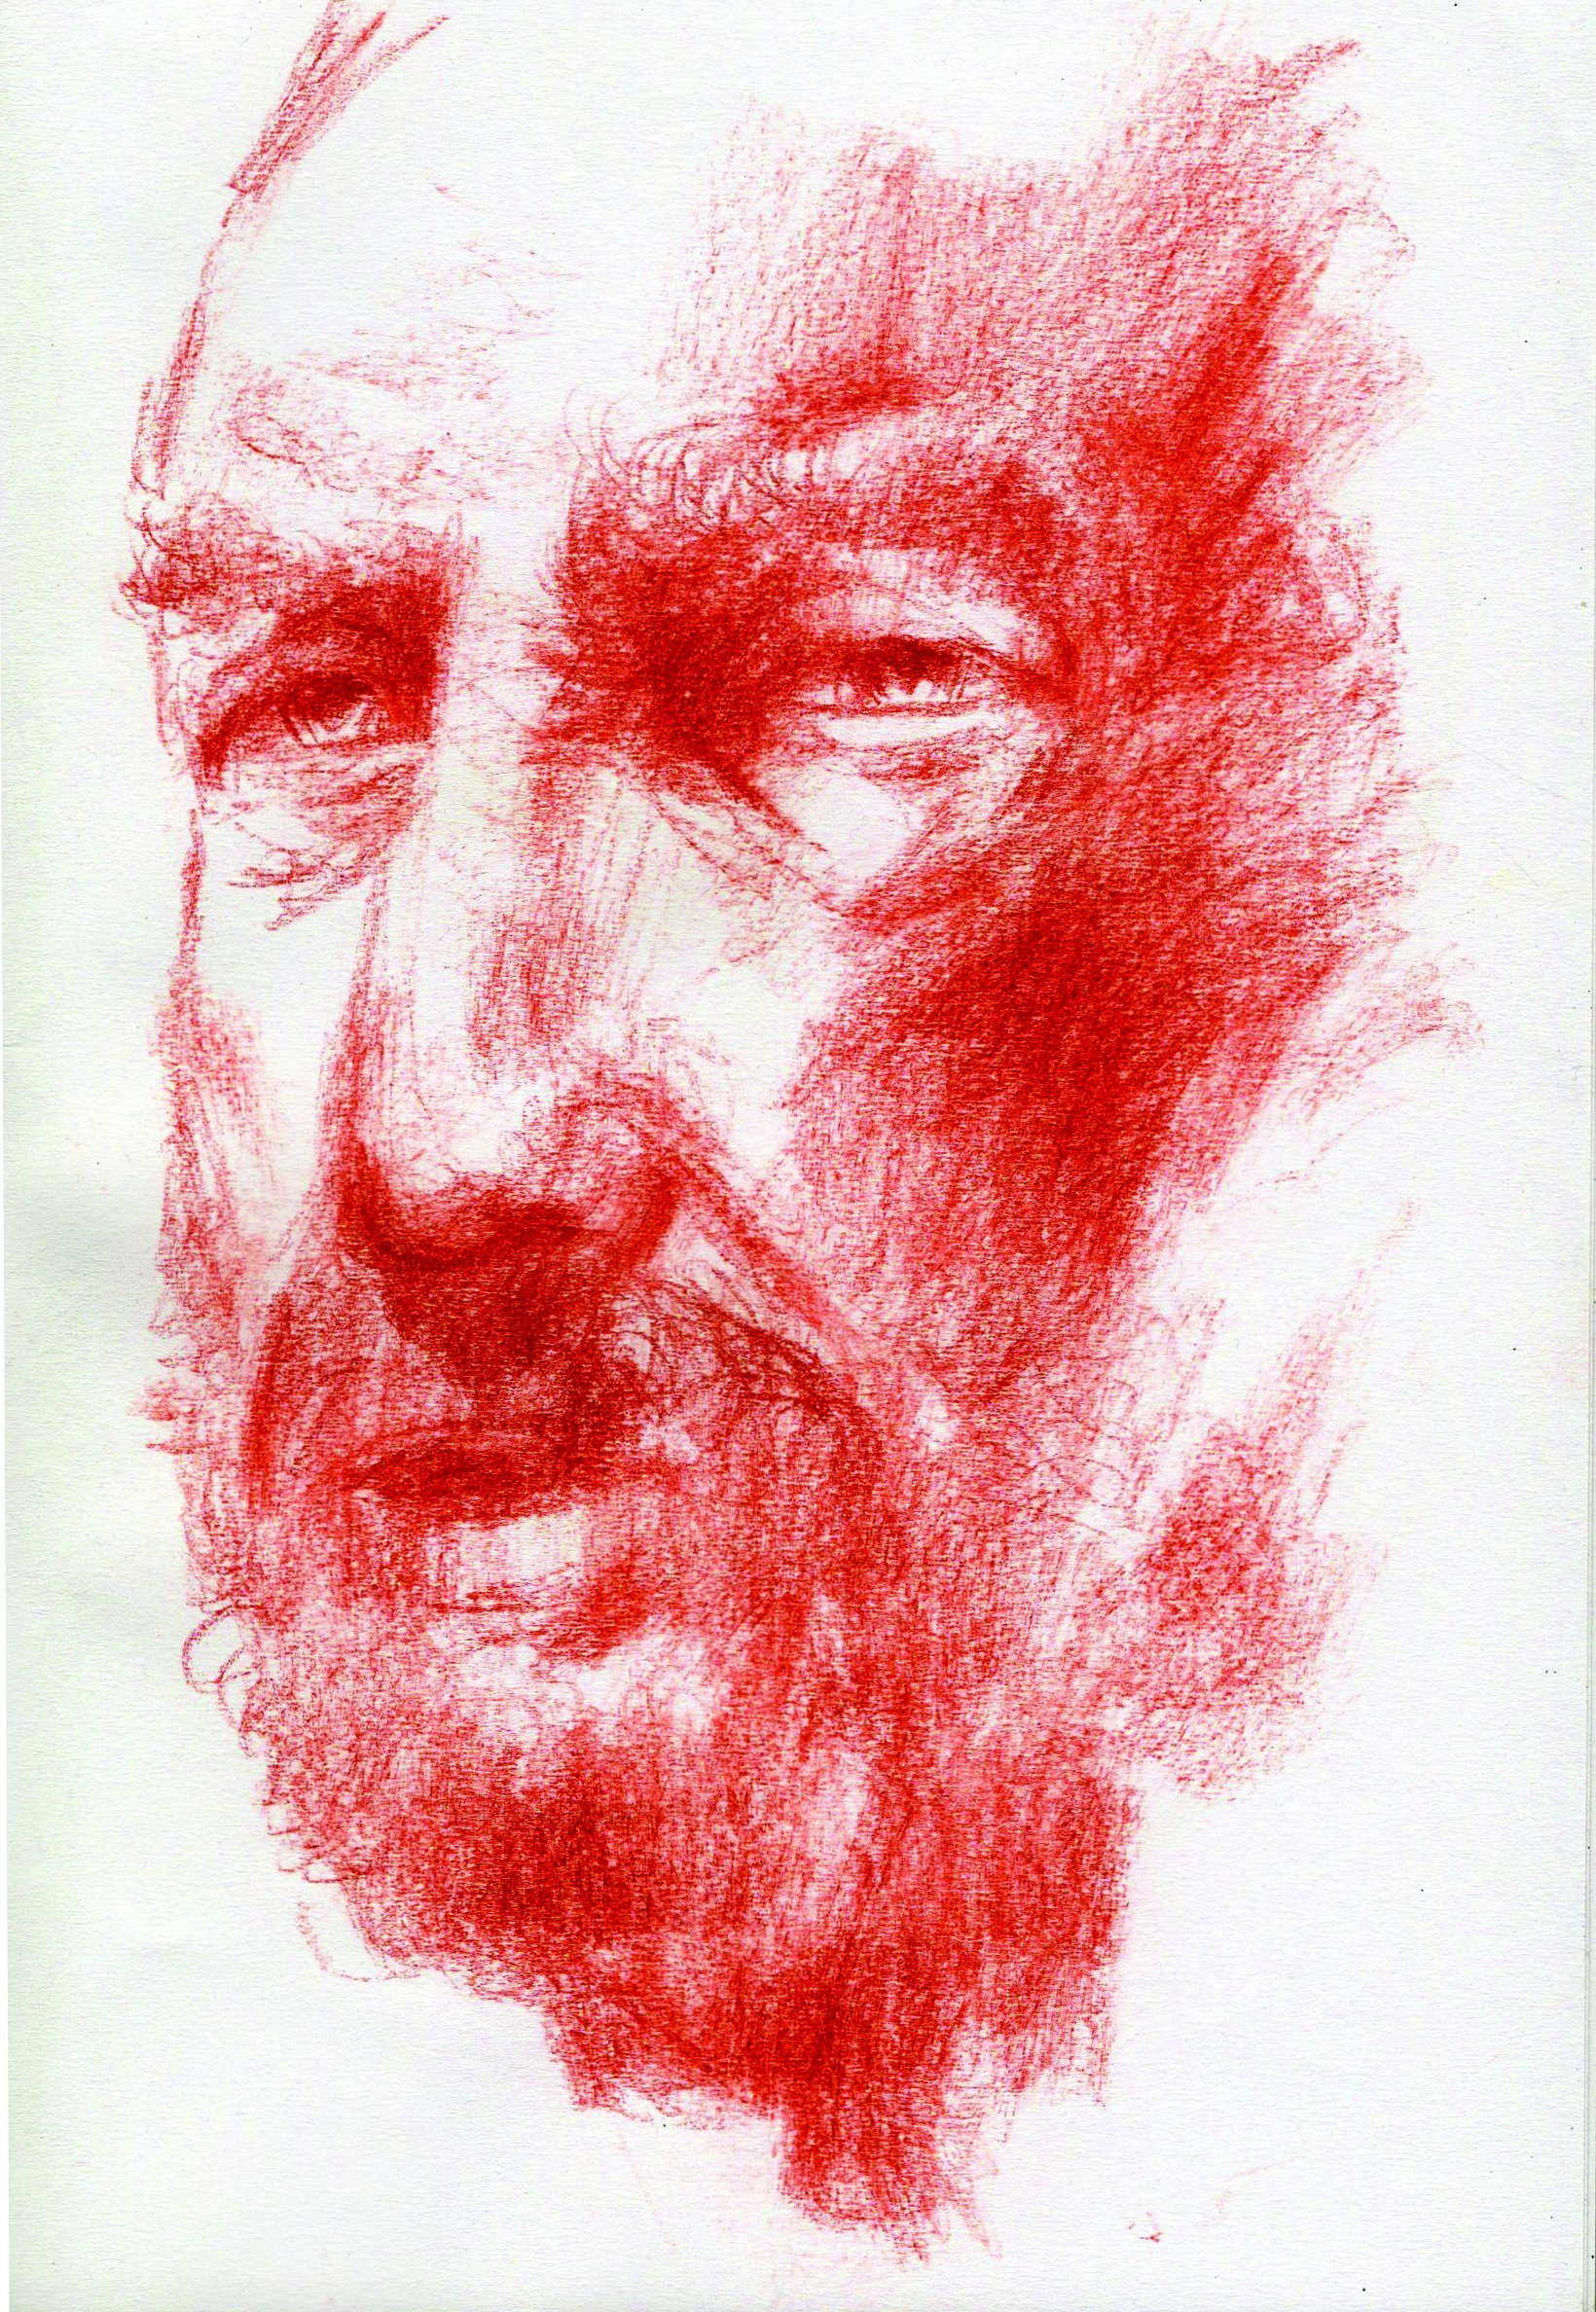 John Tooma; Head Study, 2021, Original Drawing Pastel, 14.8 x 21 cm. Artwork description: 241 study in chalk pastel, Conte pastel on paper...